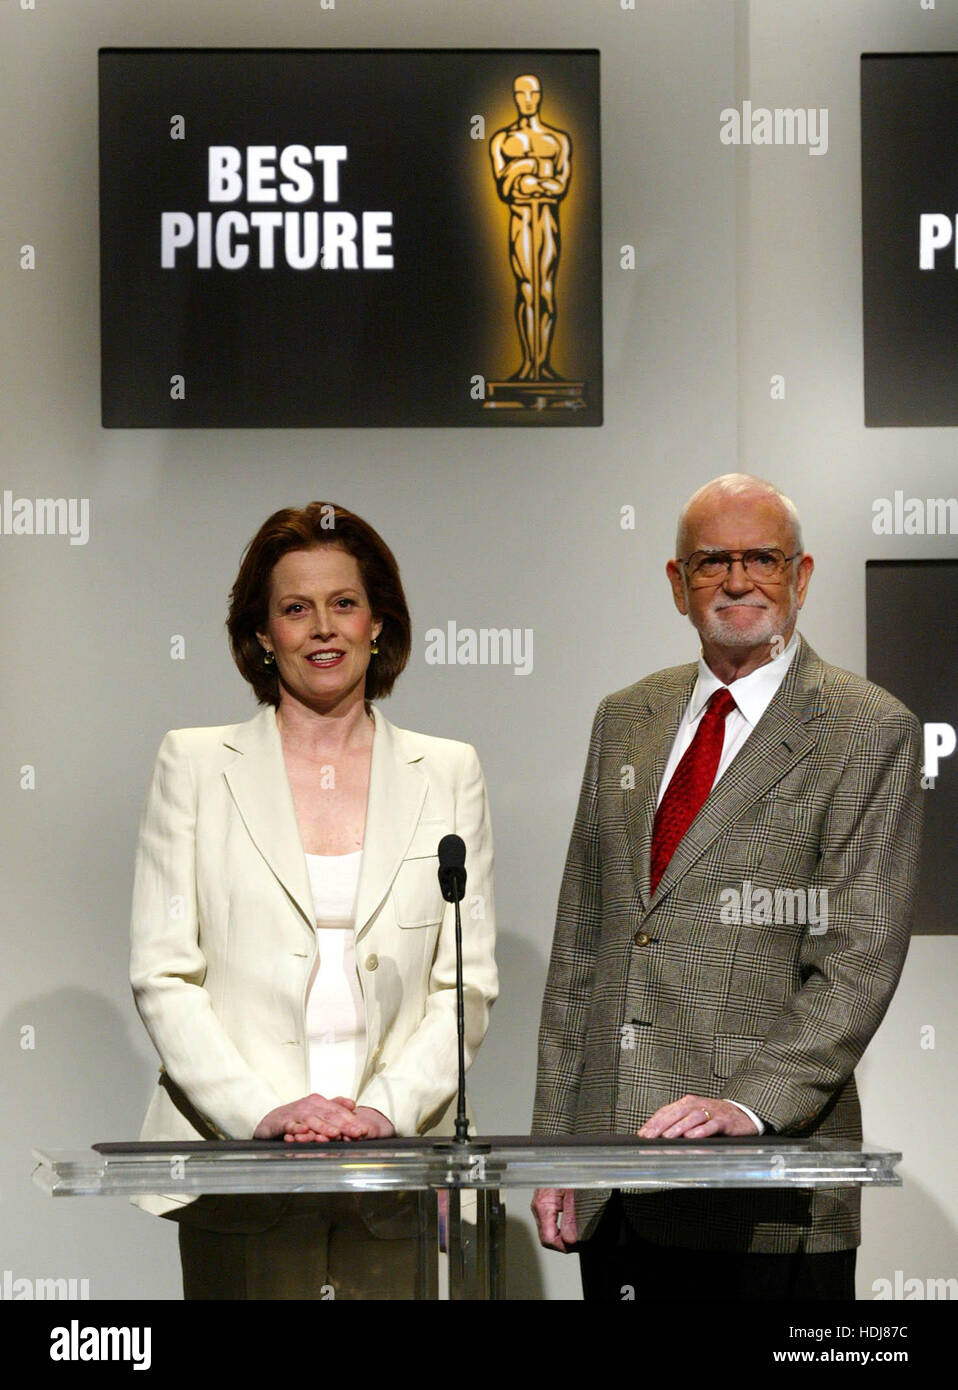 Actress Sigourney Weaver and Frank Pierson, president of the Academy of Motion Picture Arts and Sciences announce - Stock Image